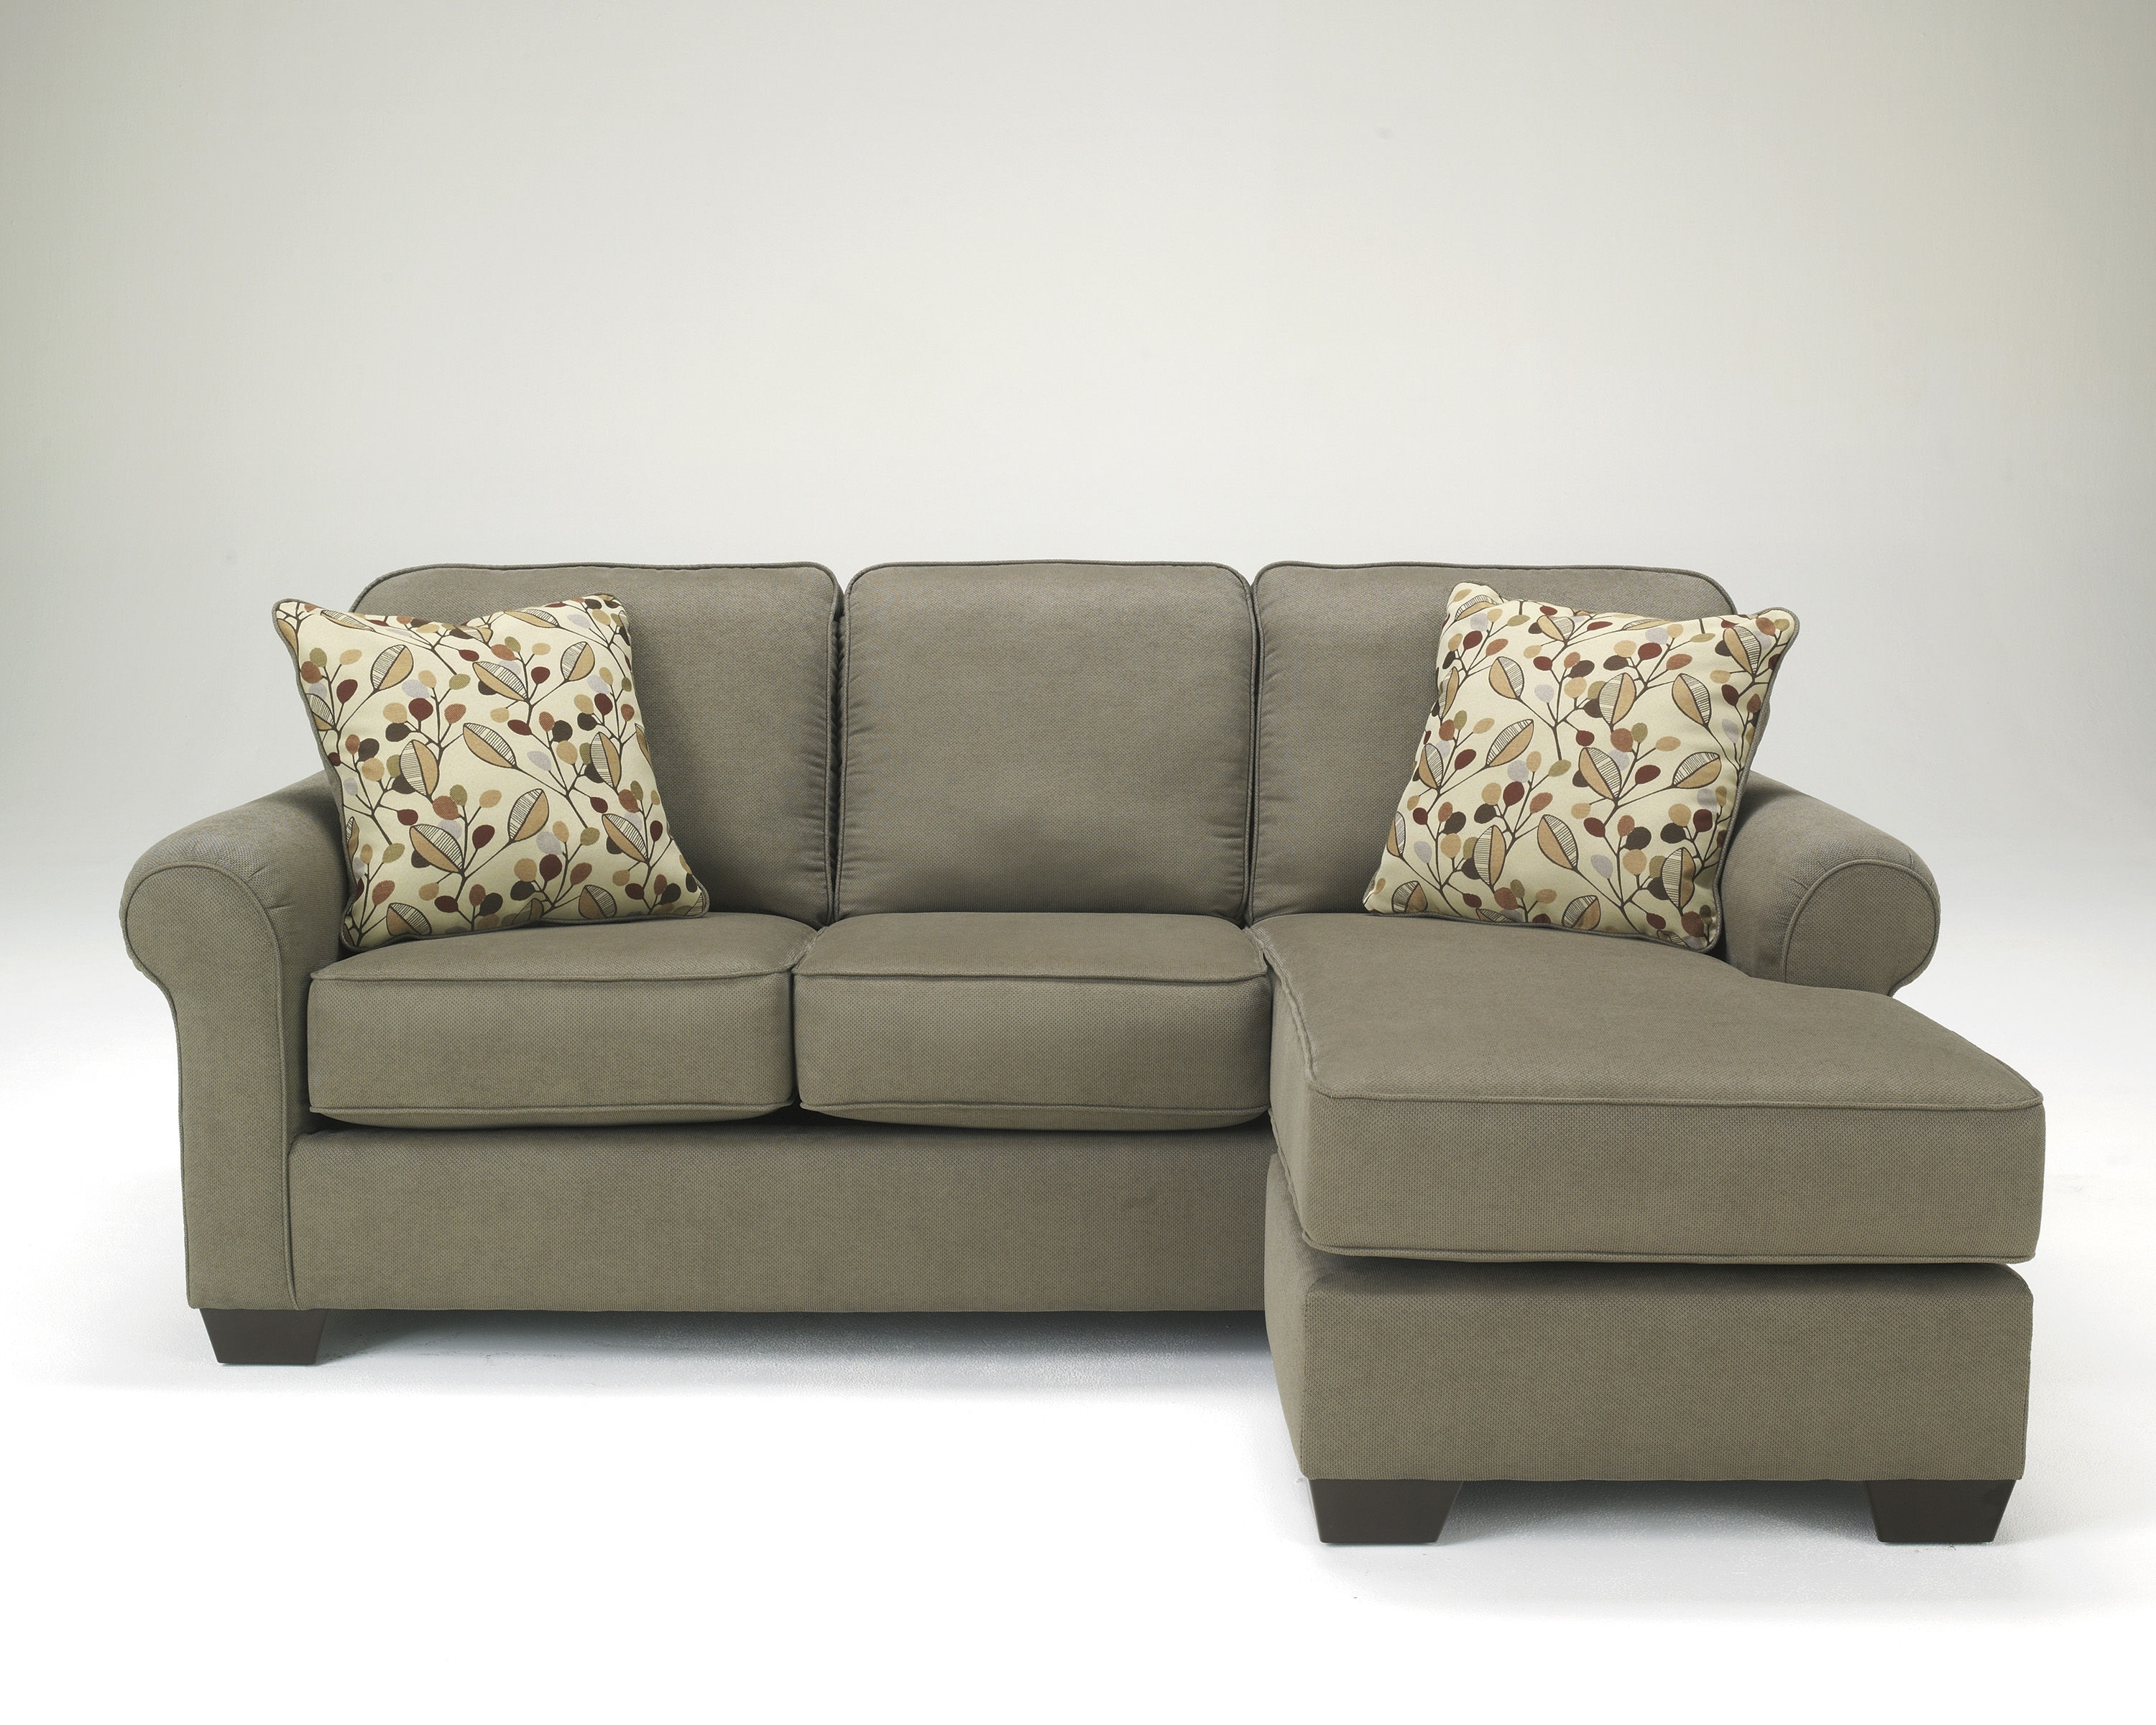 Newest Ashley Furniture Danely Dusk Sofa Chaise Sectional (View 11 of 15)